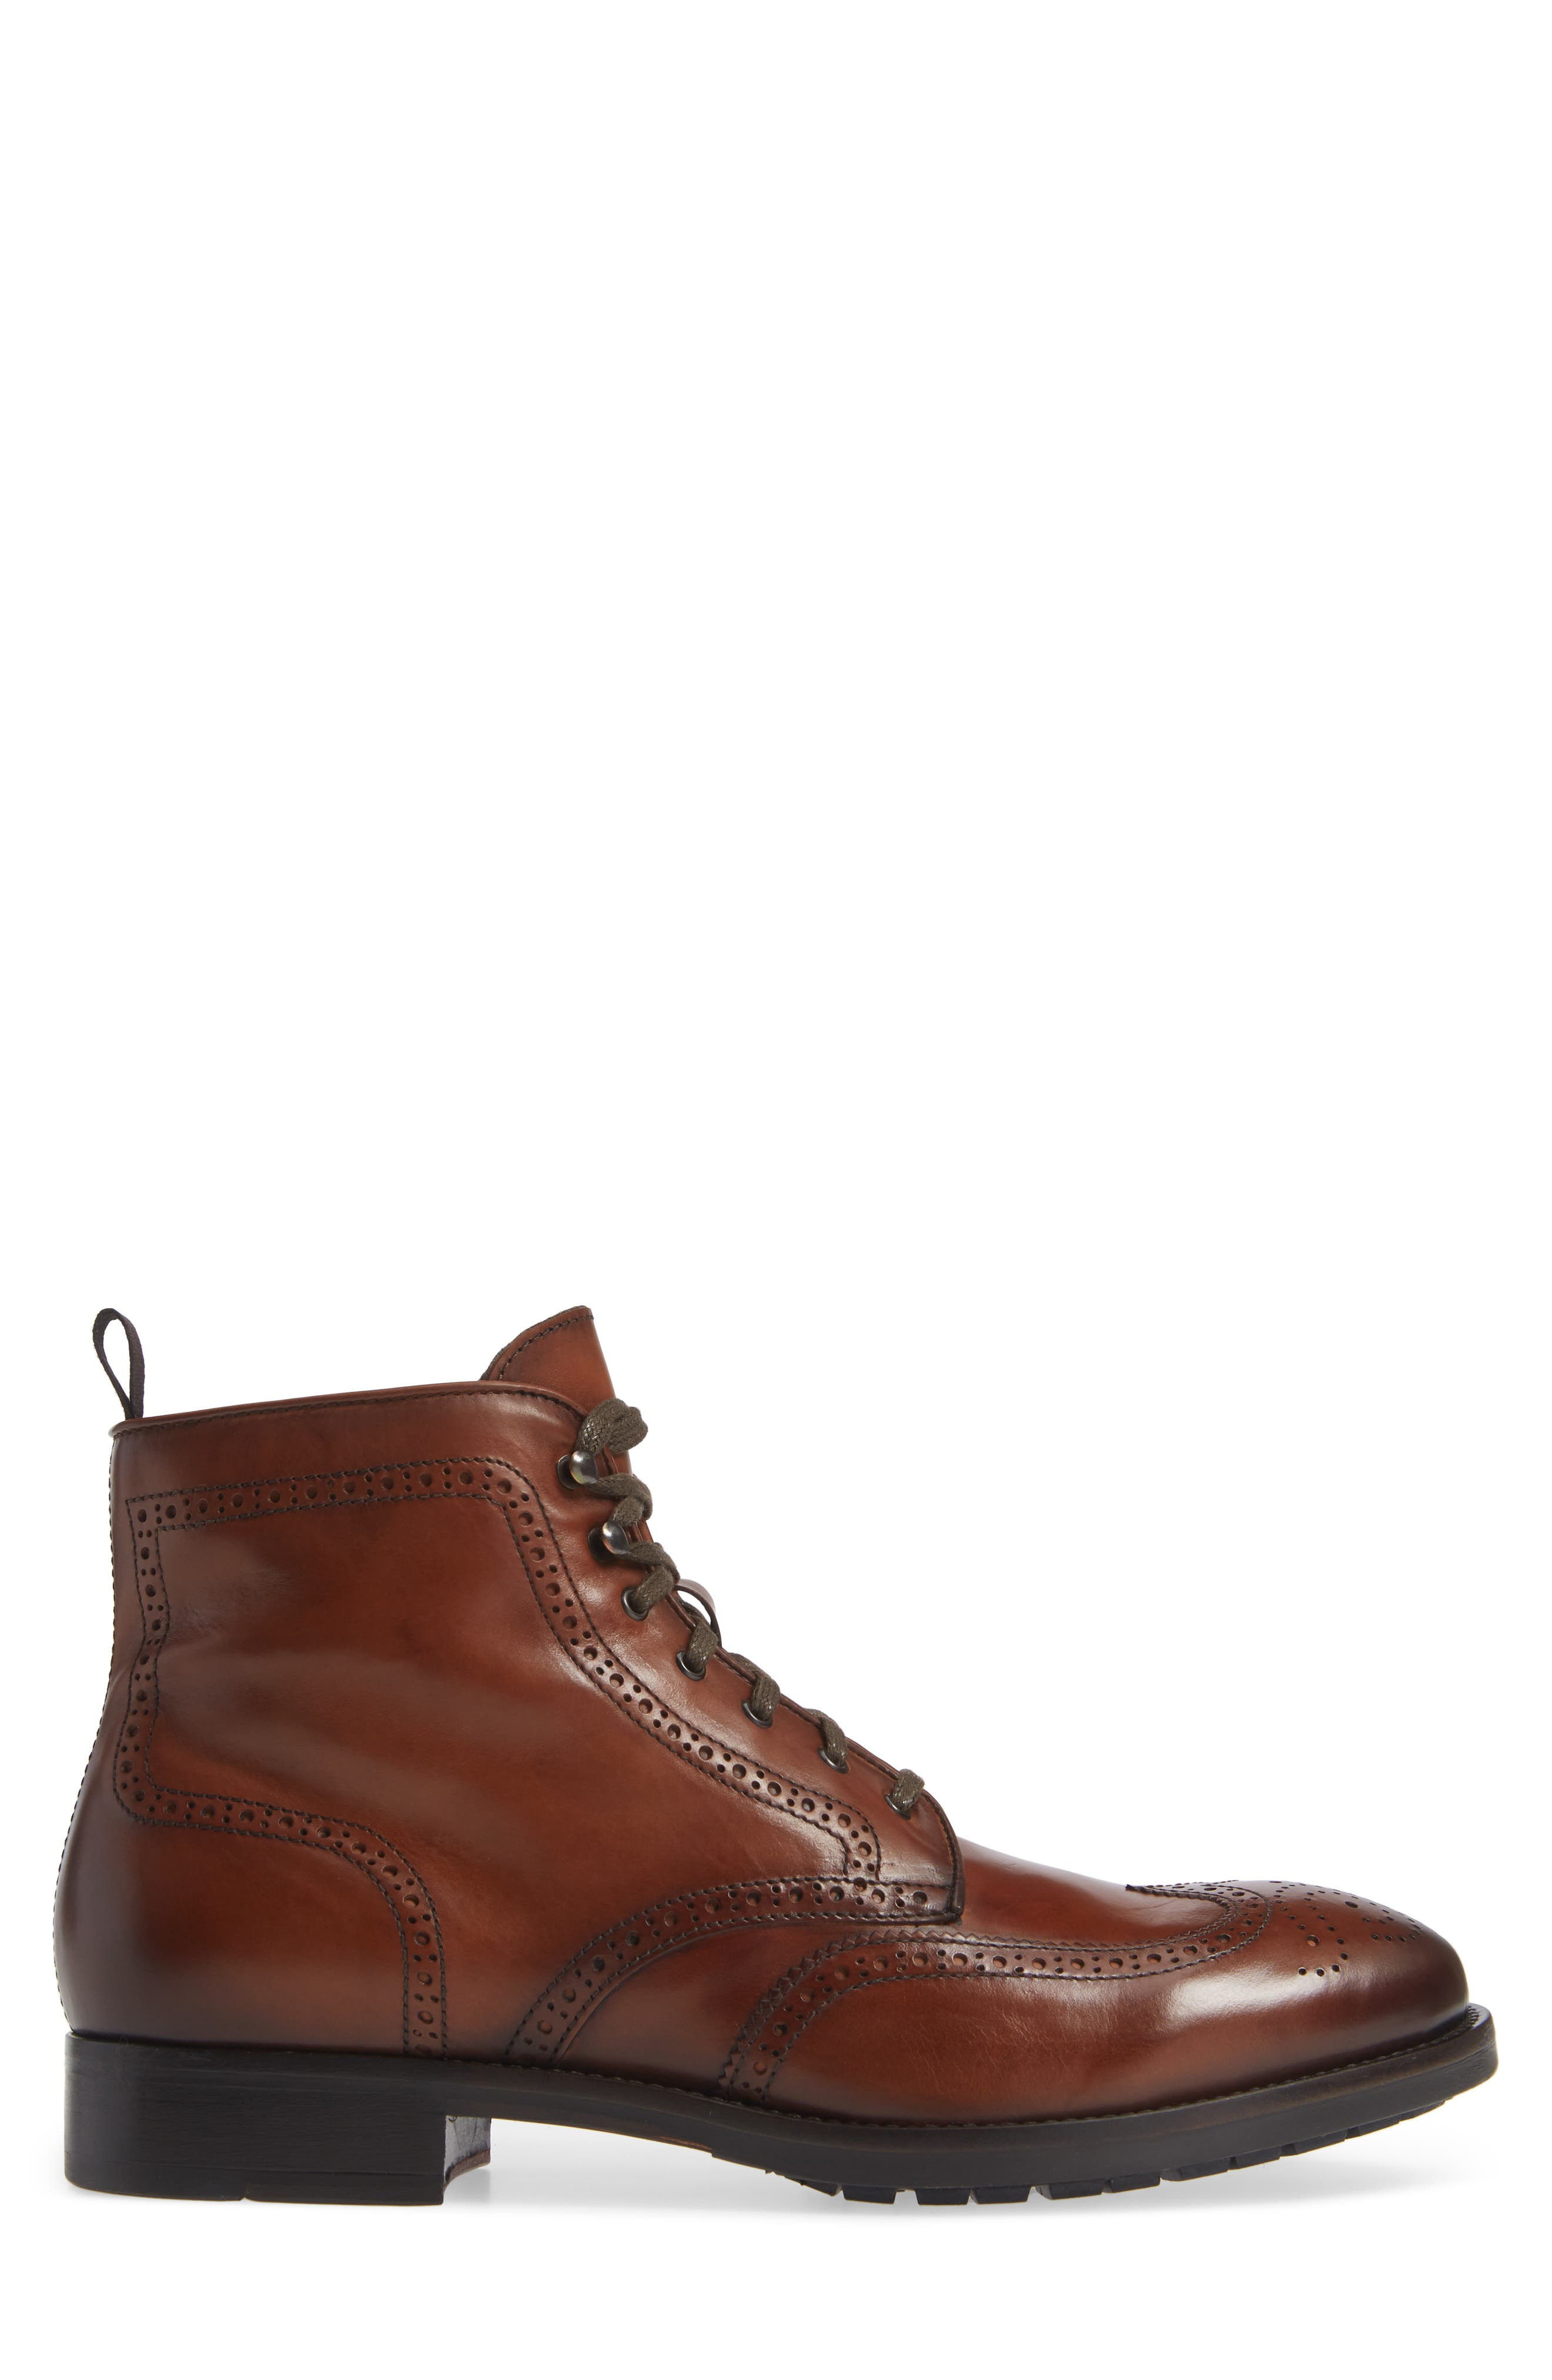 Auckland Wingtip Boot,                             Alternate thumbnail 3, color,                             BROWN LEATHER